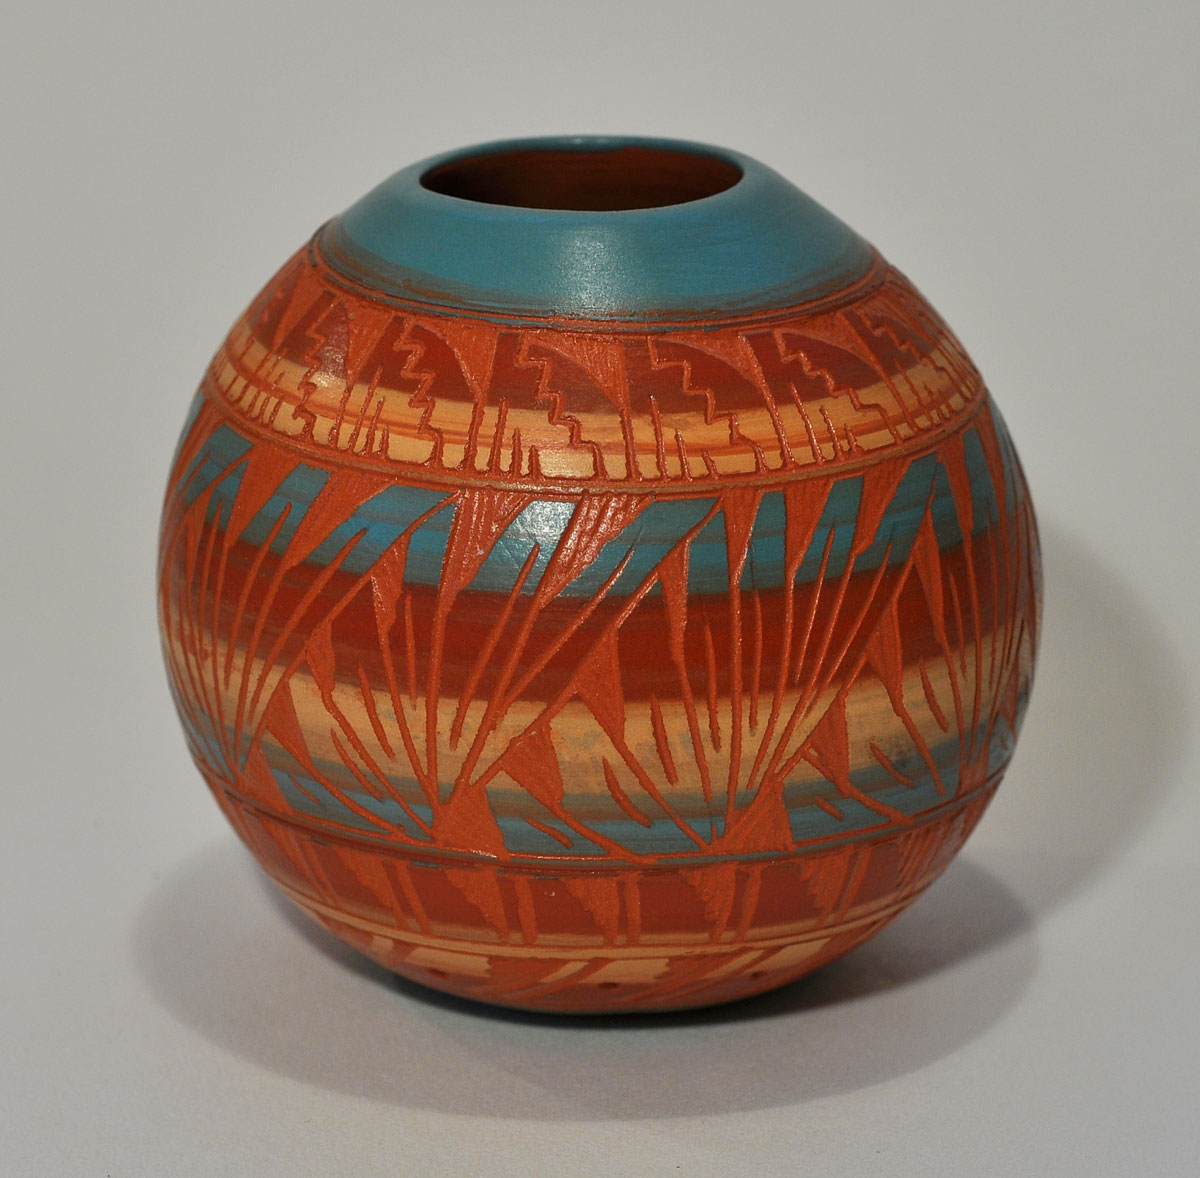 Http Earthwork7 Blogspot Com 2012 03 Native American Pottery Html